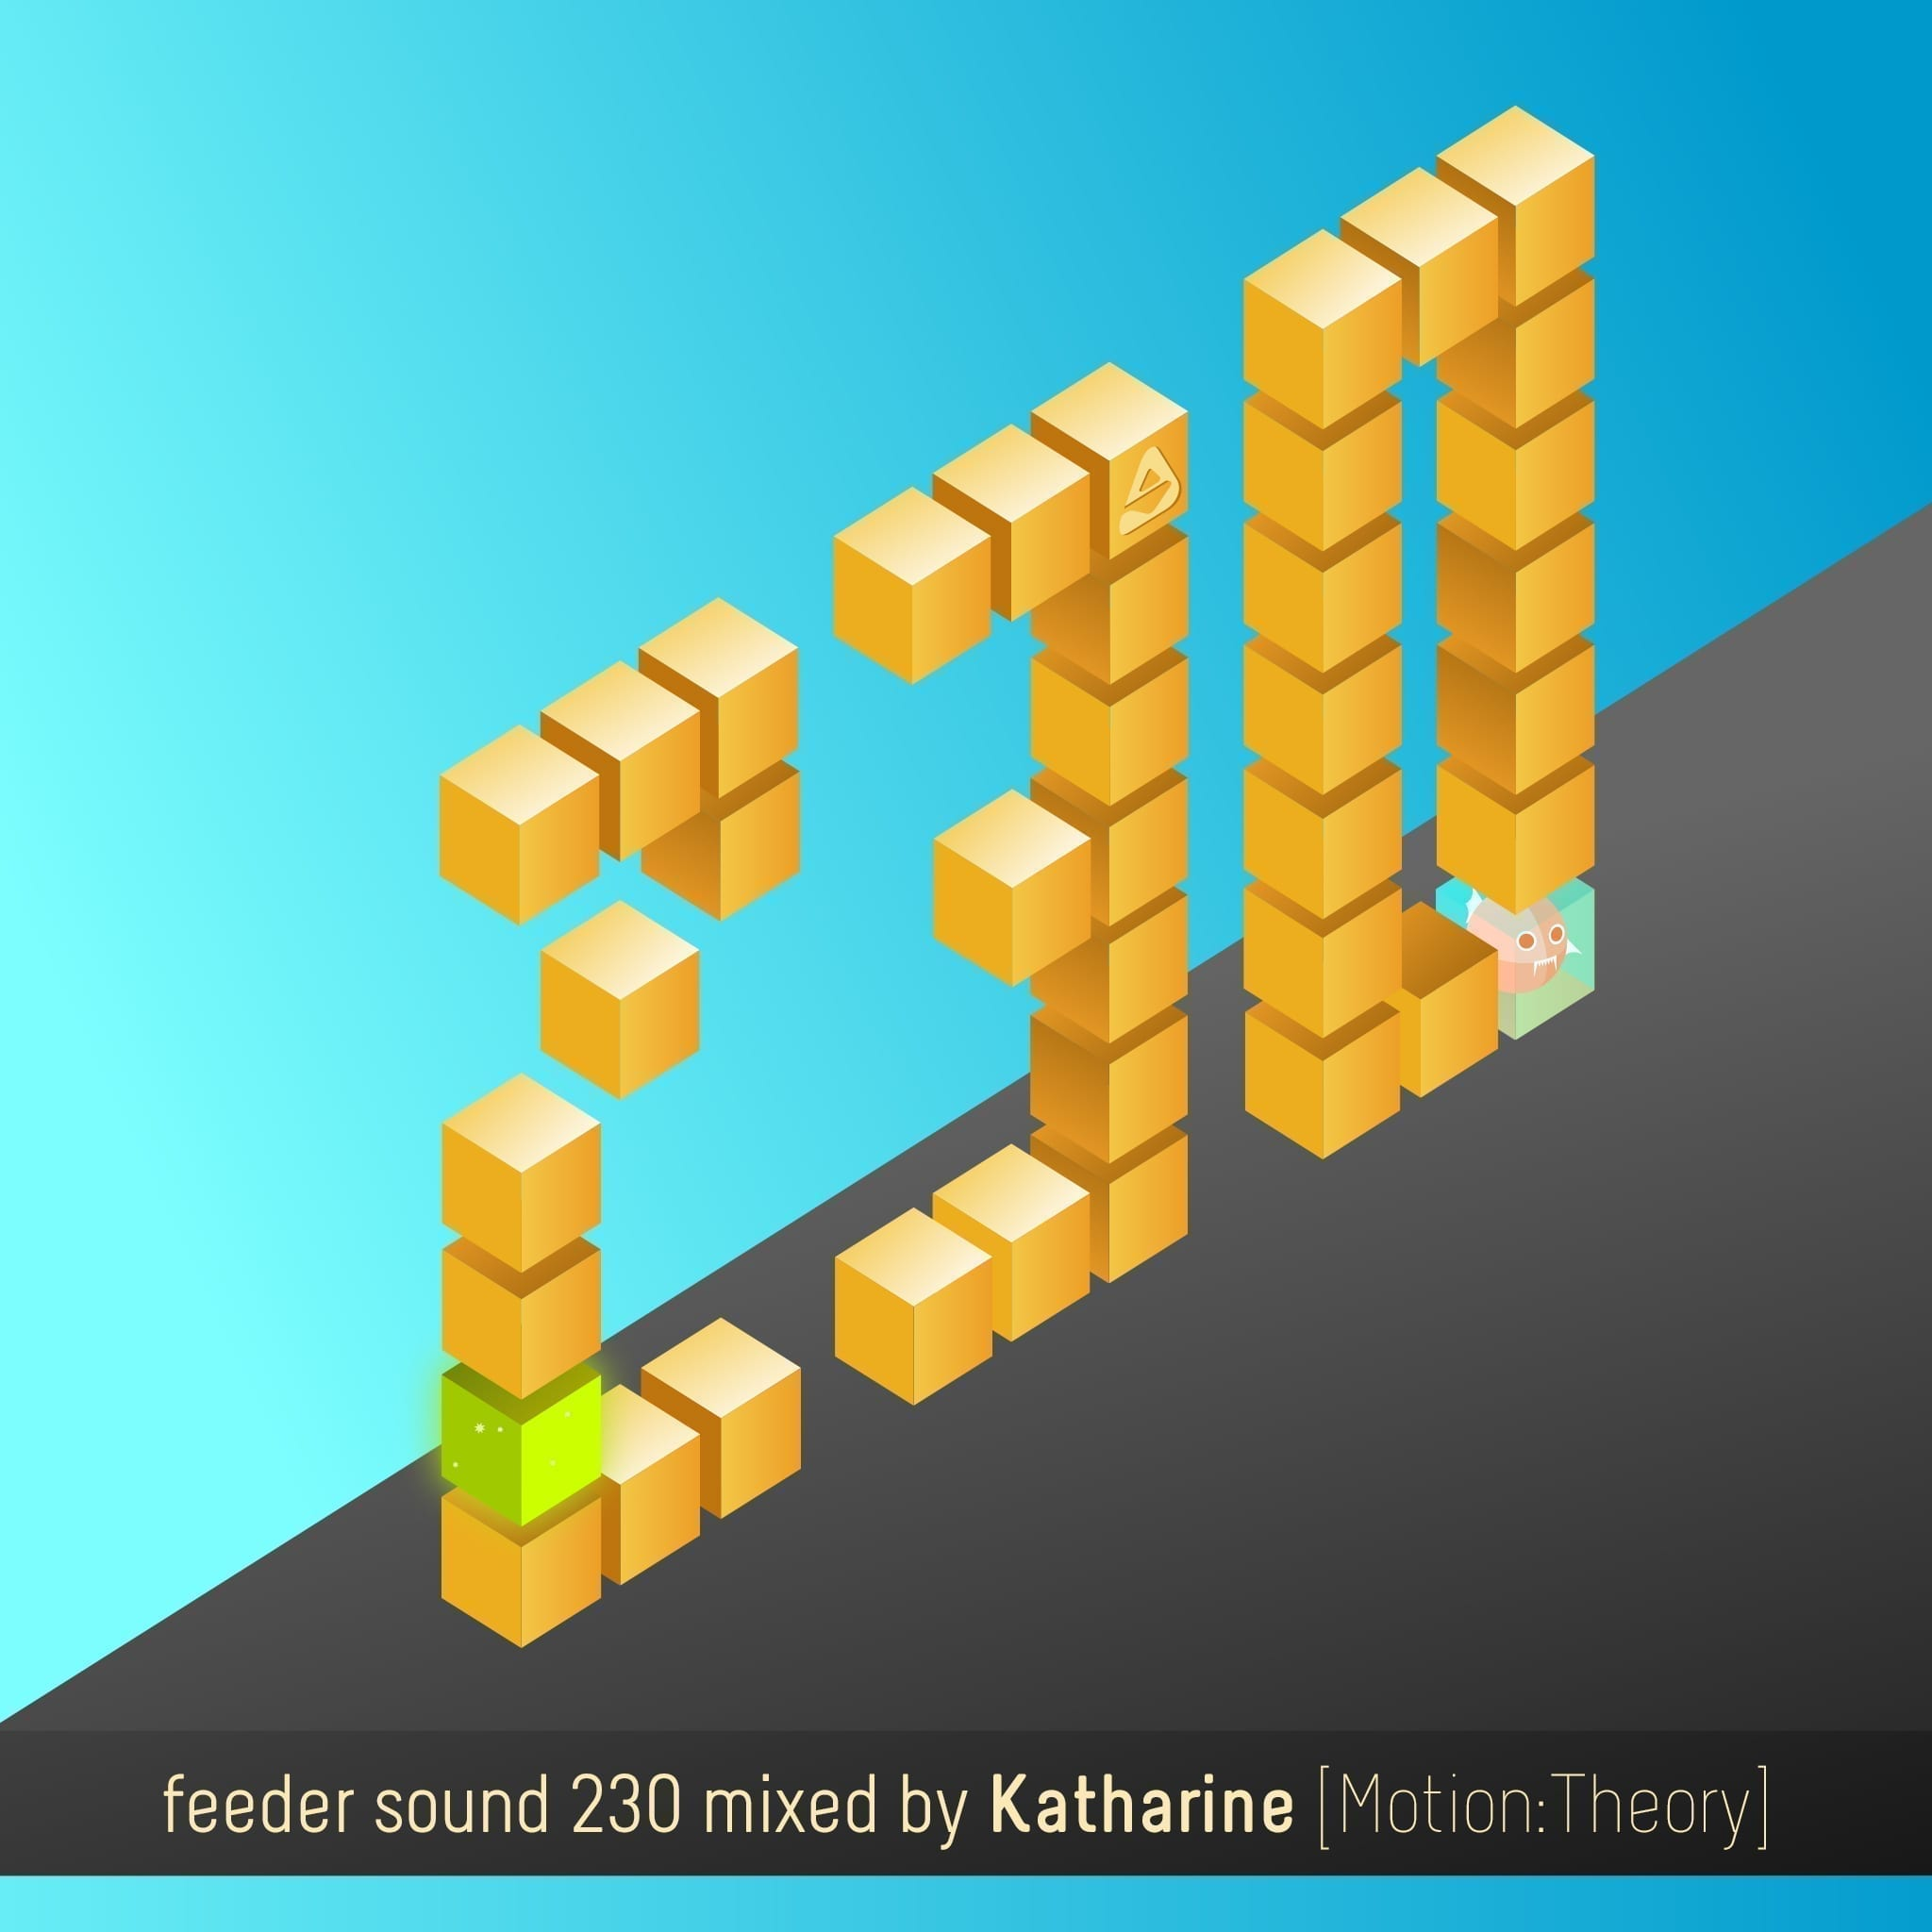 feeder sound 230 mixed by Katharine article-cover